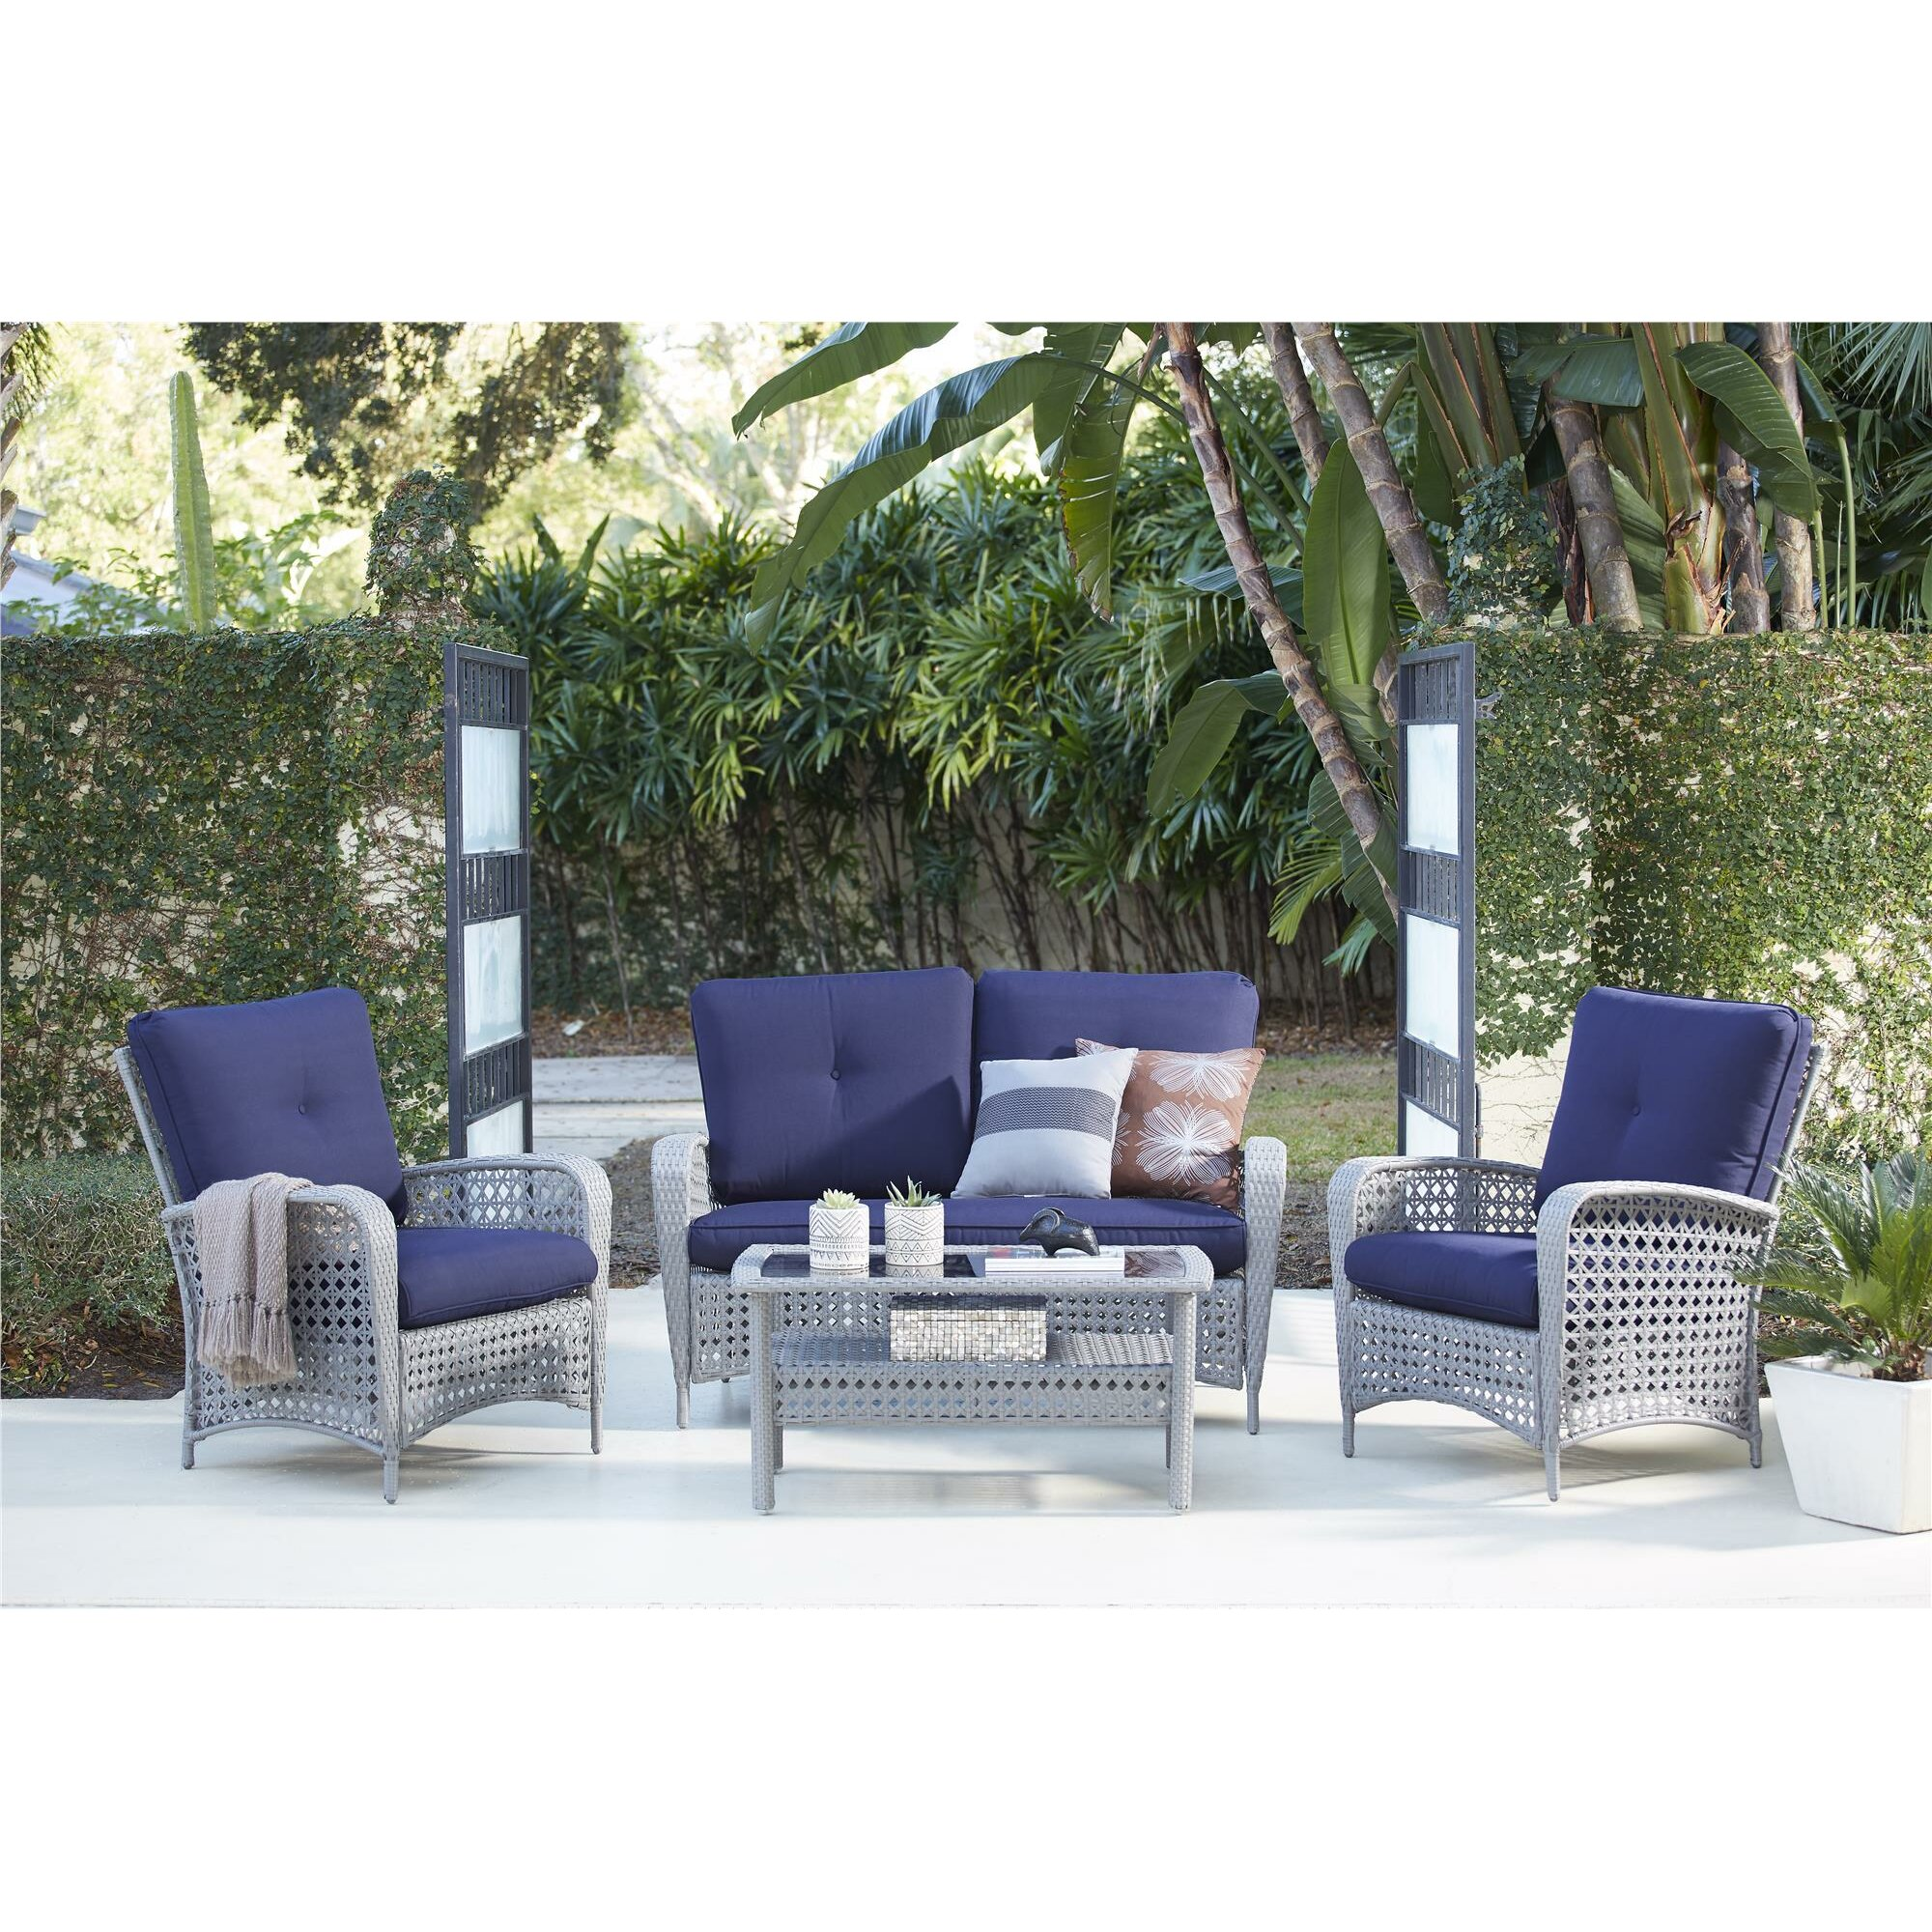 Cosco Home And Office Lakewood Ranch 4 Piece Sofa Seating